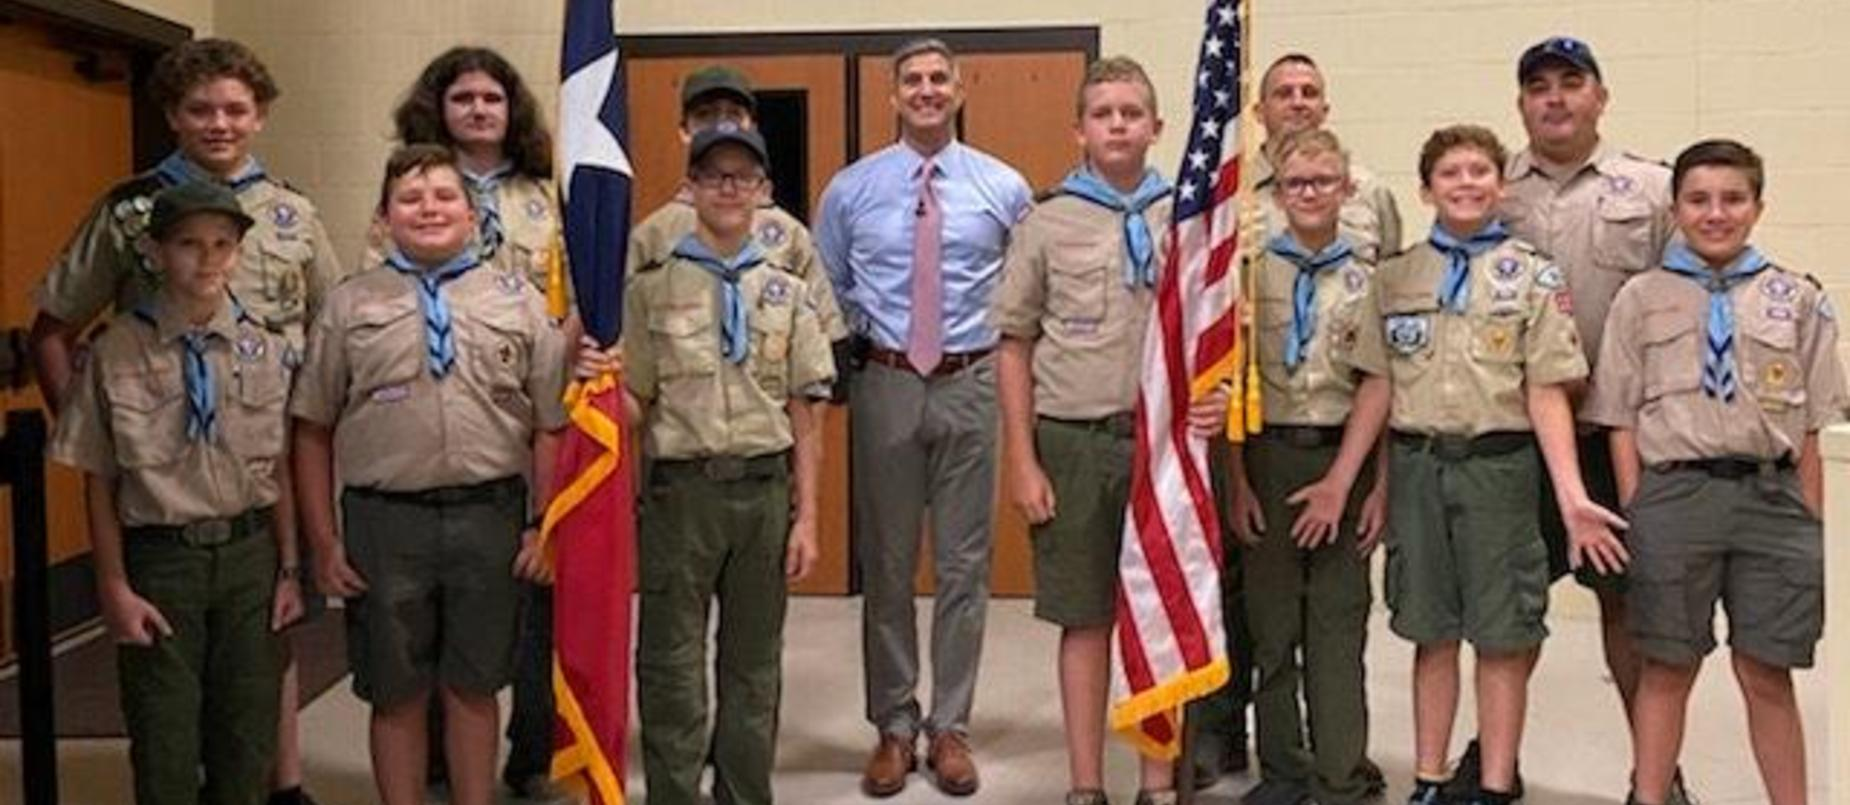 LISD Convocation Boy Scouts of America